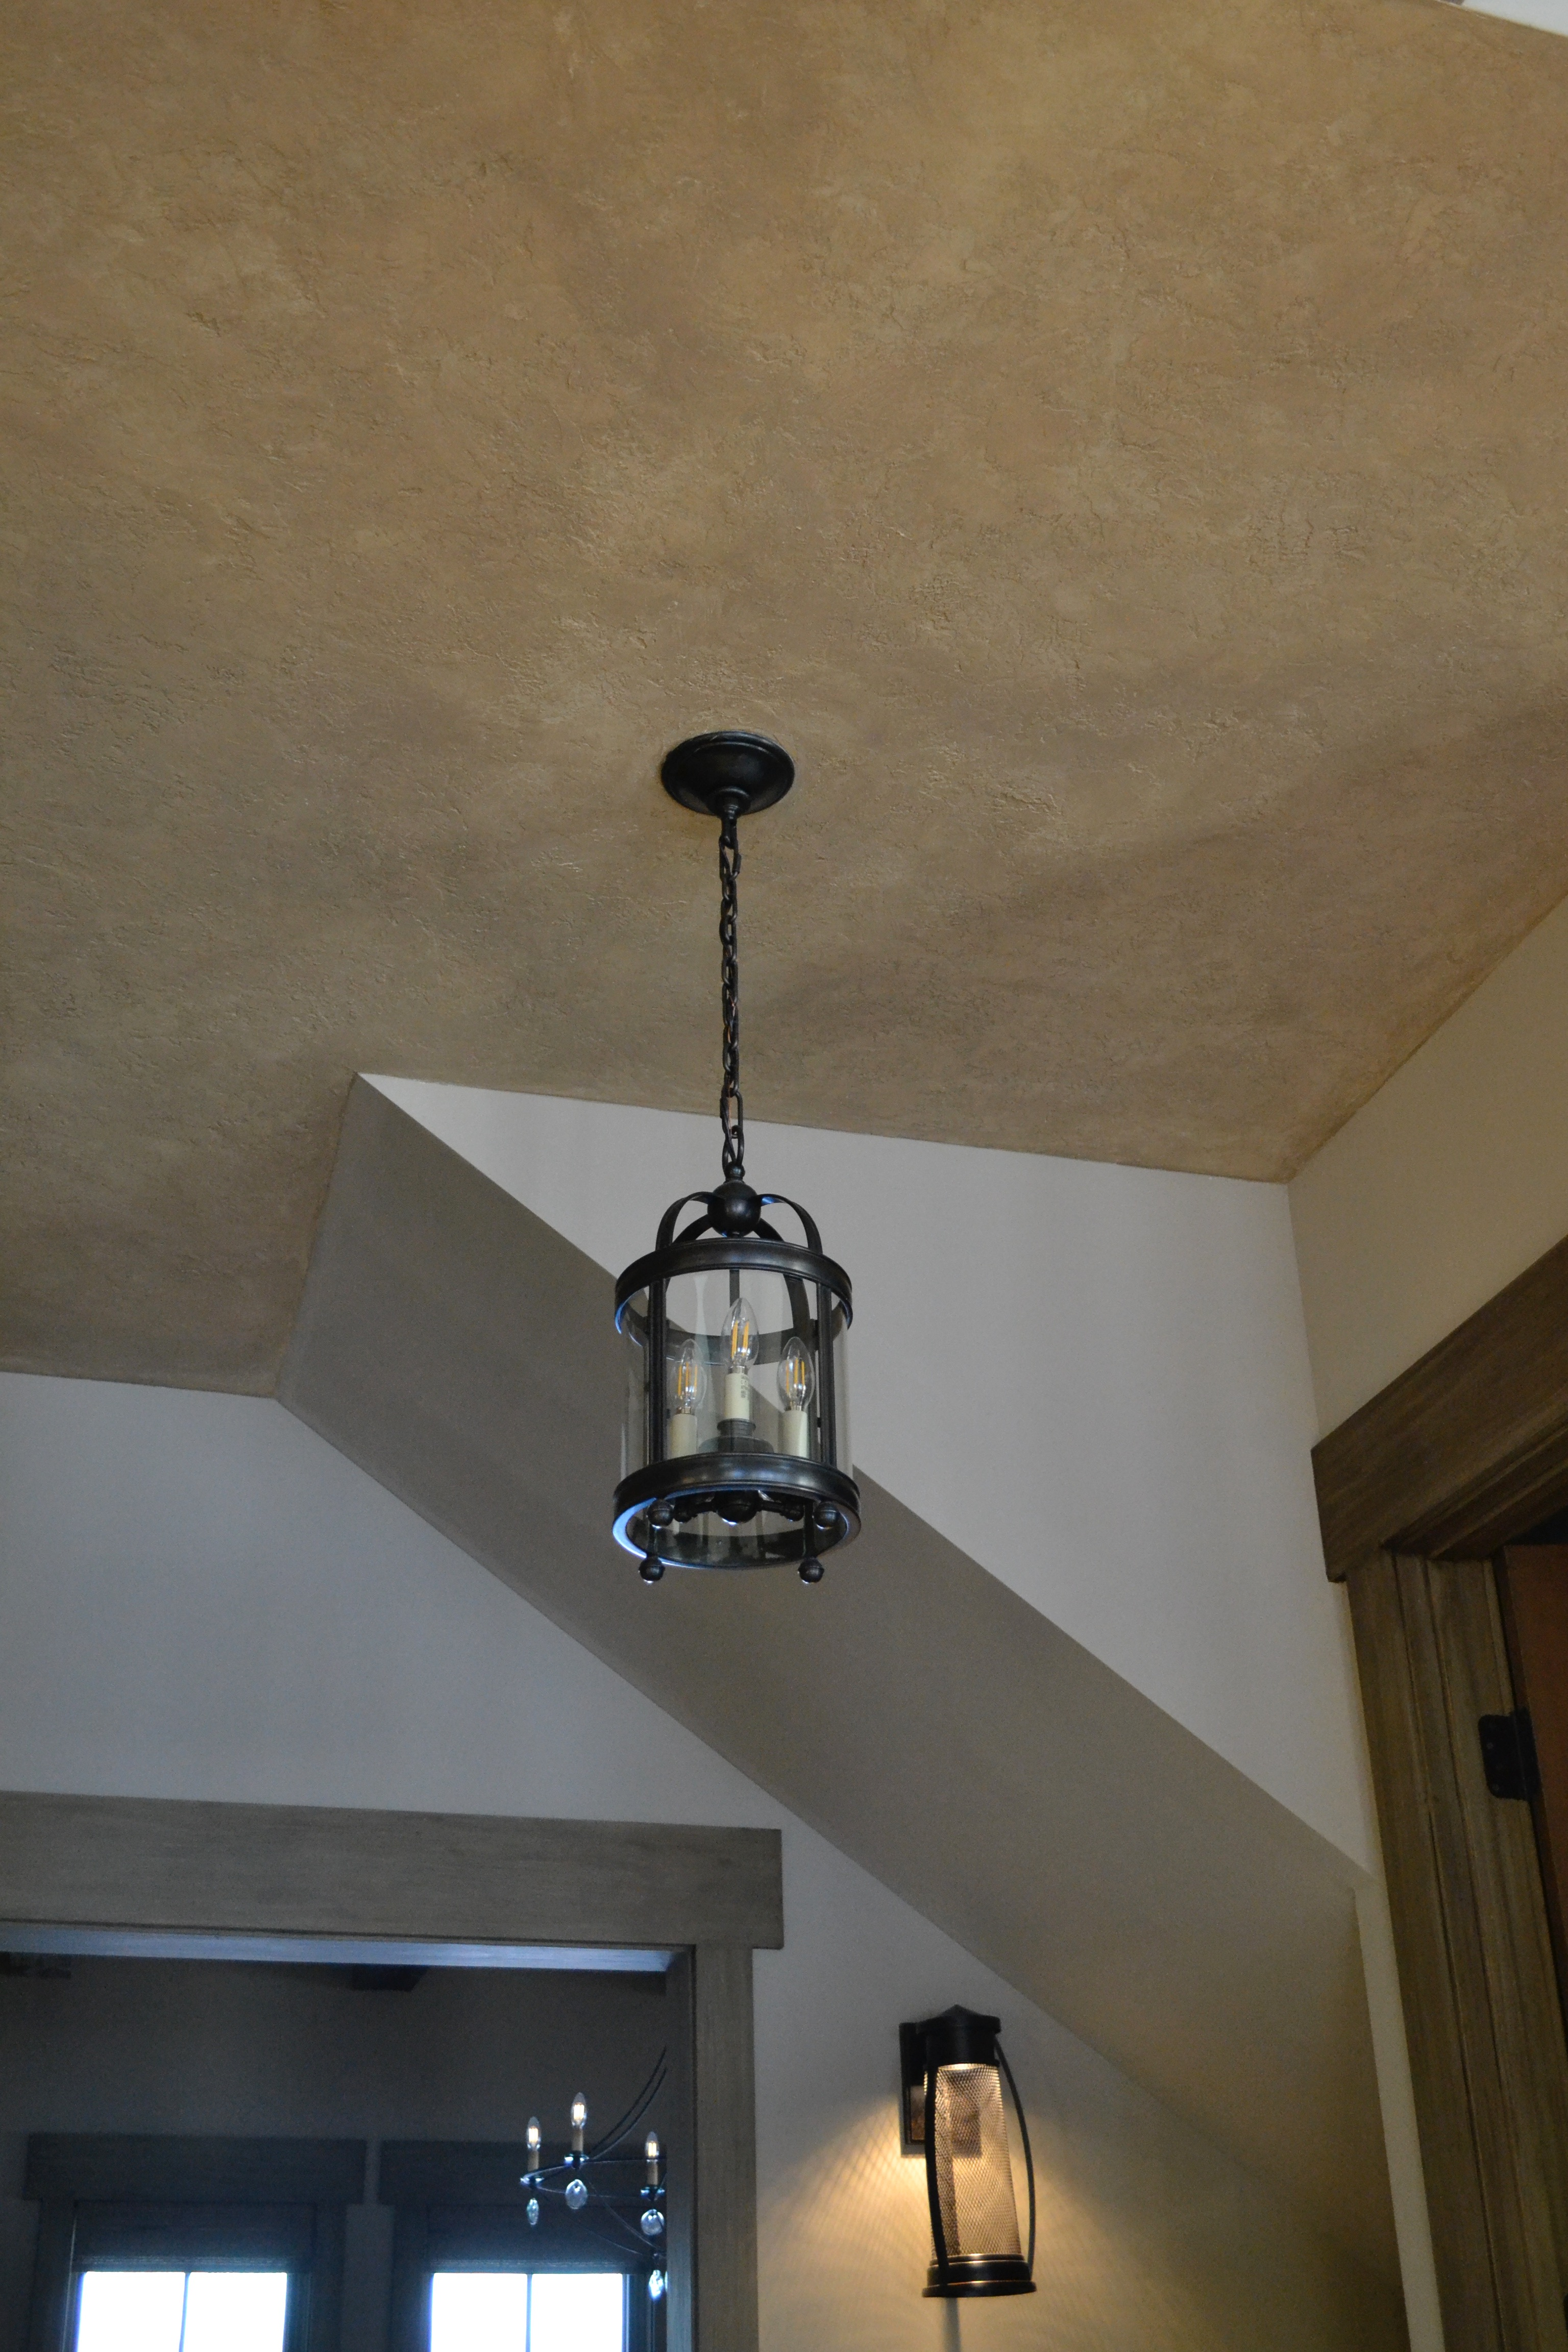 Faux finish on the ceiling